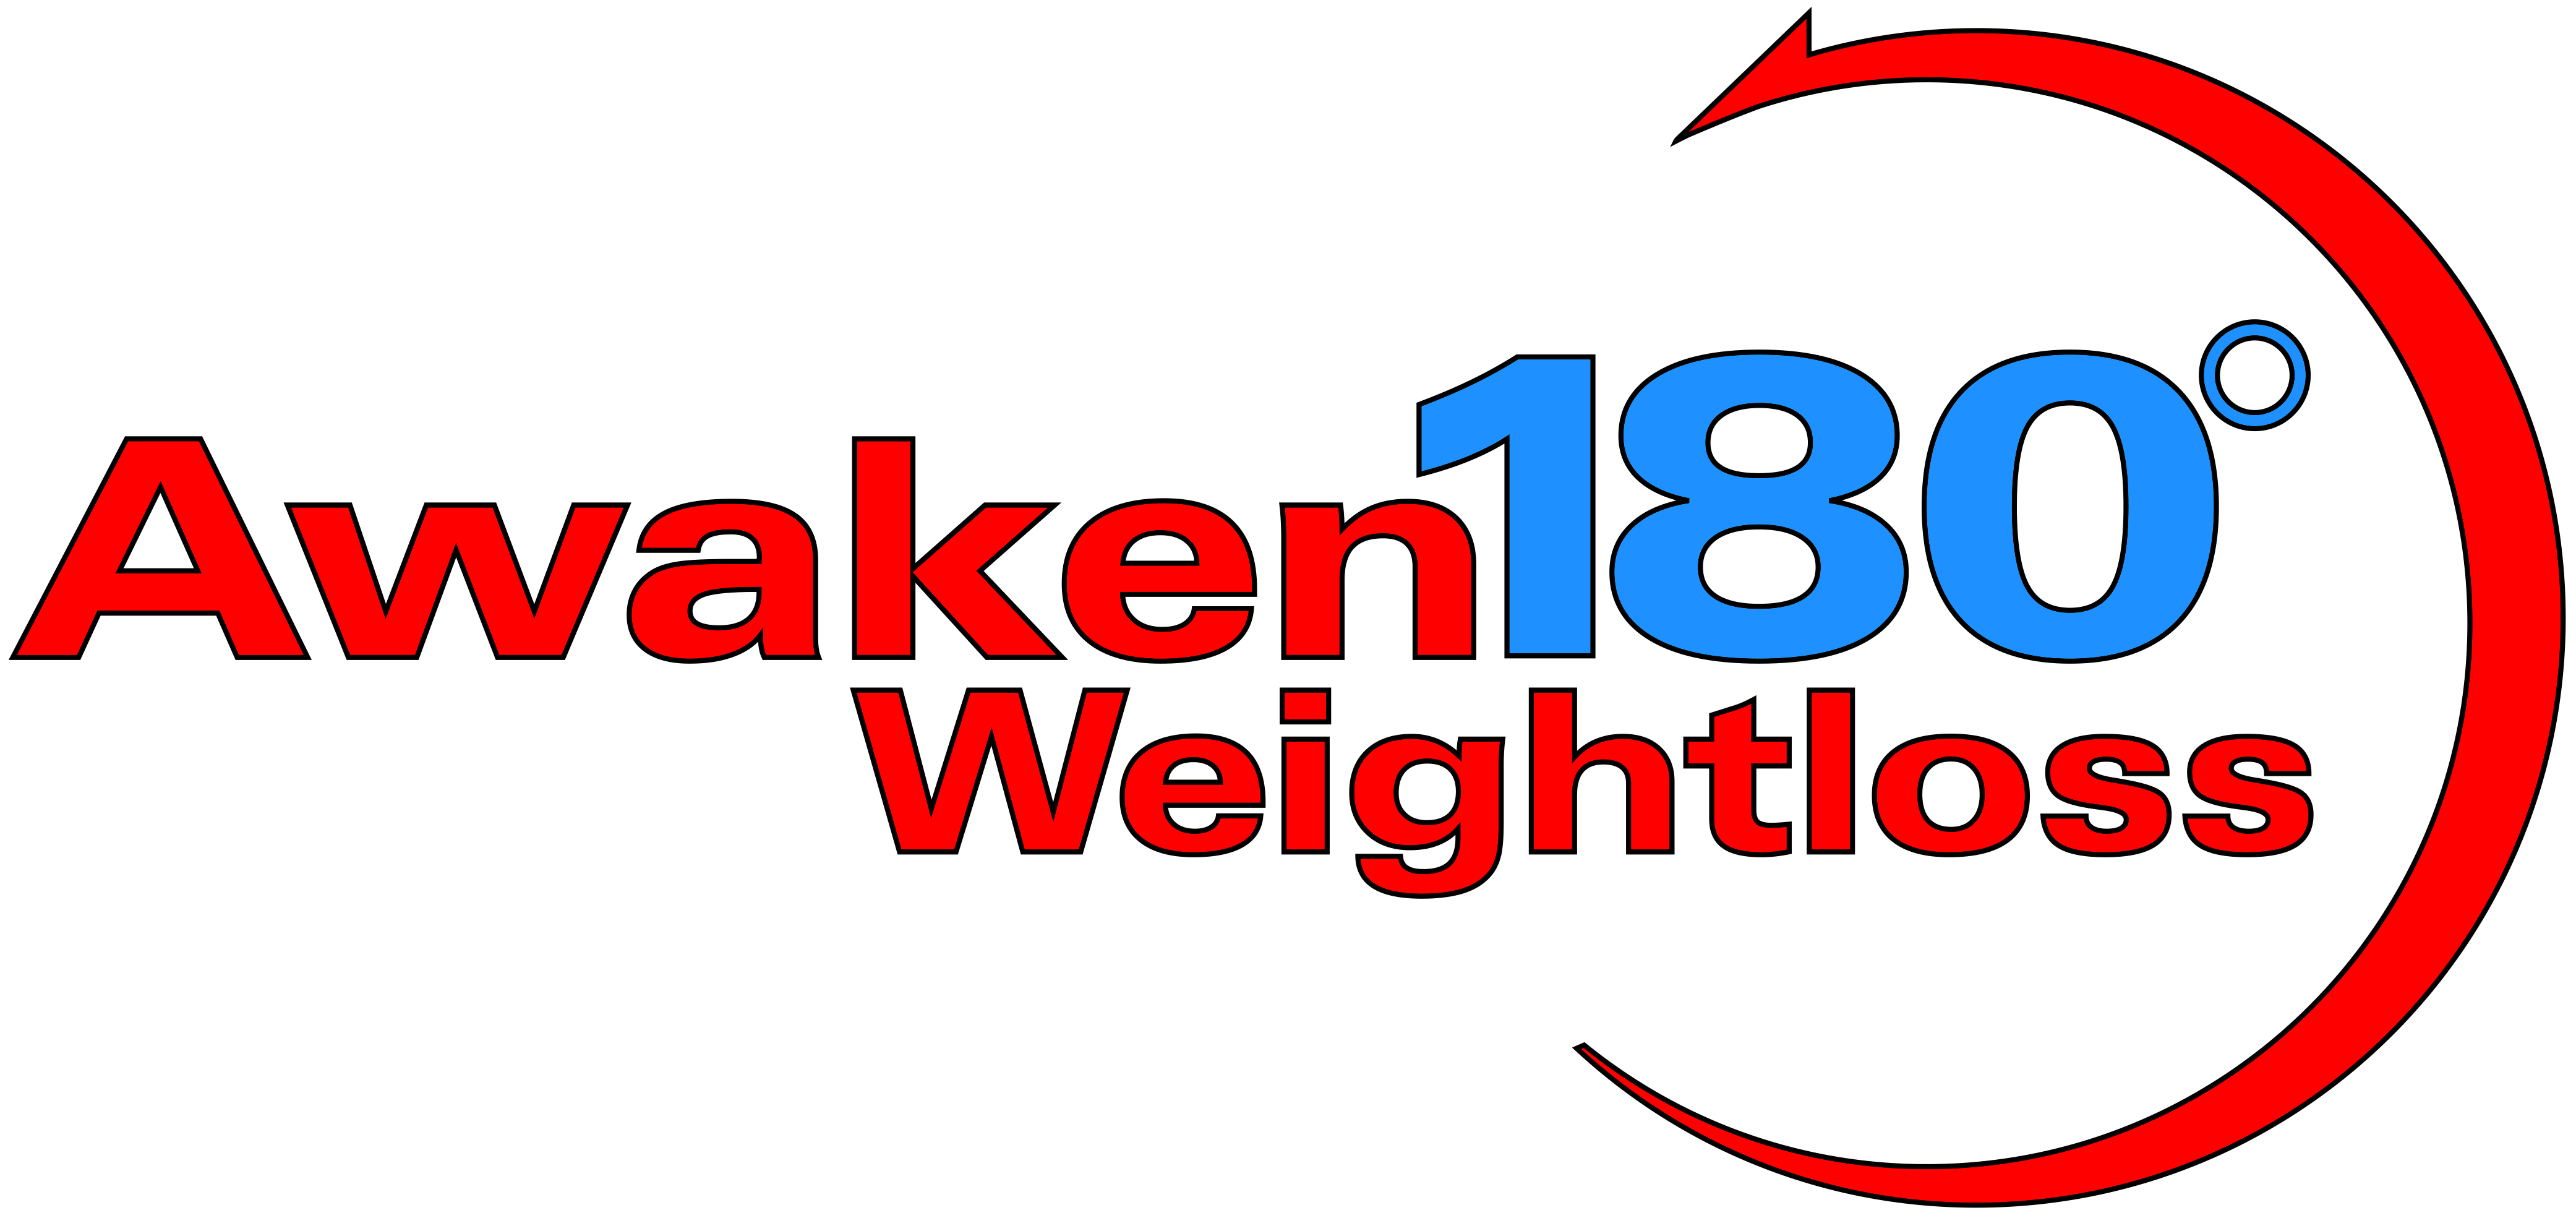 Awaken180 Weightloss Help Center home page